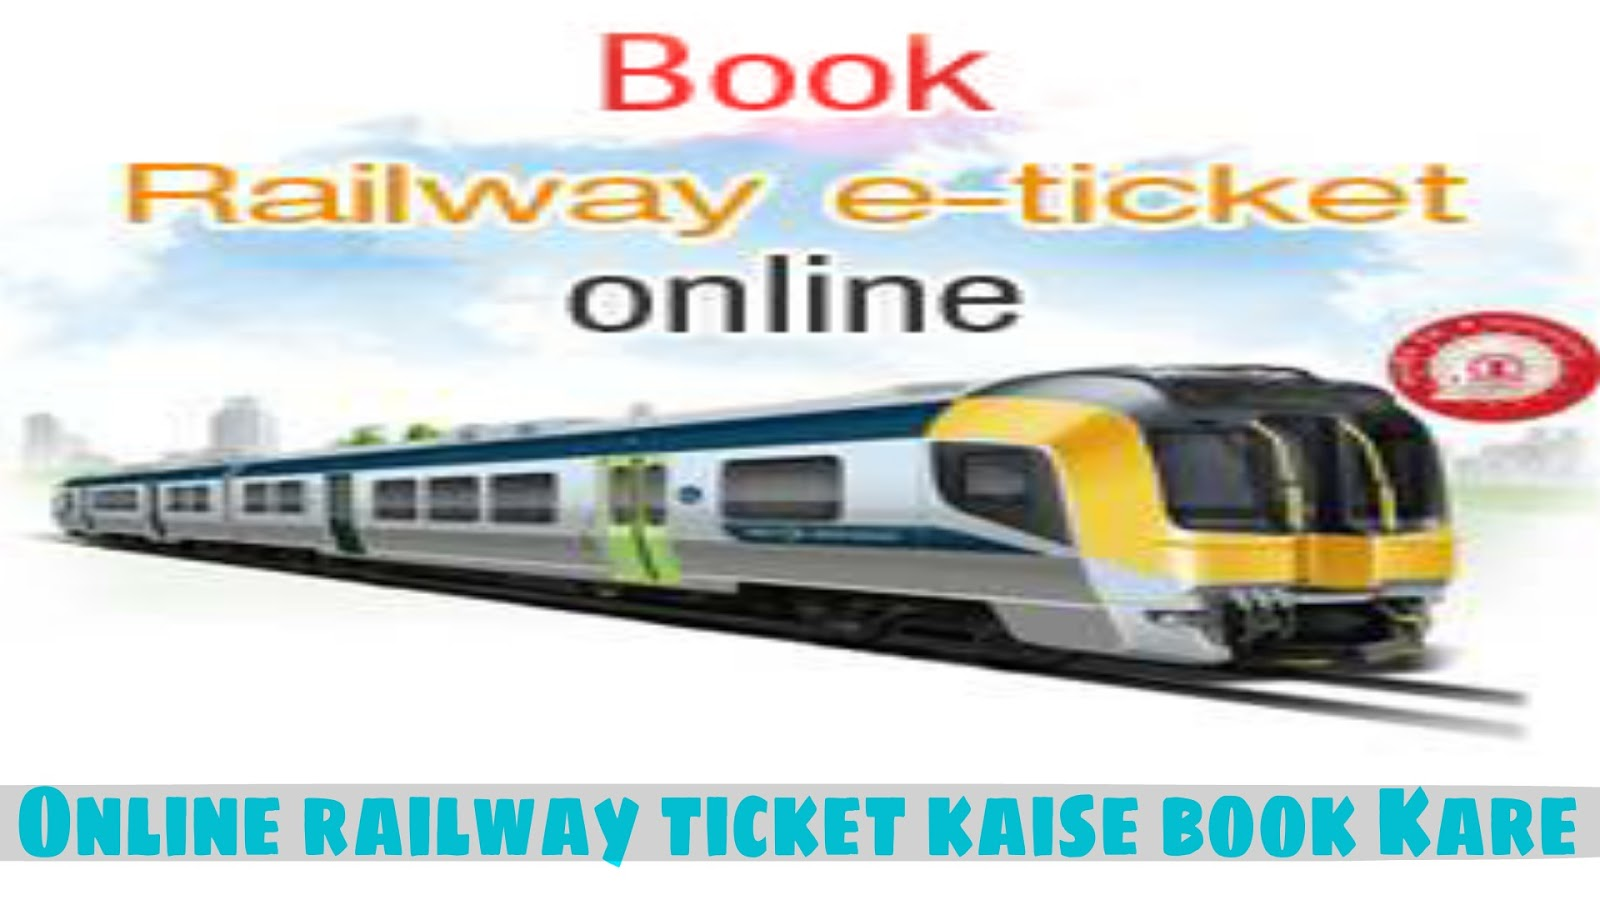 mobile se online railway ticket kaise book kare irctc. Black Bedroom Furniture Sets. Home Design Ideas